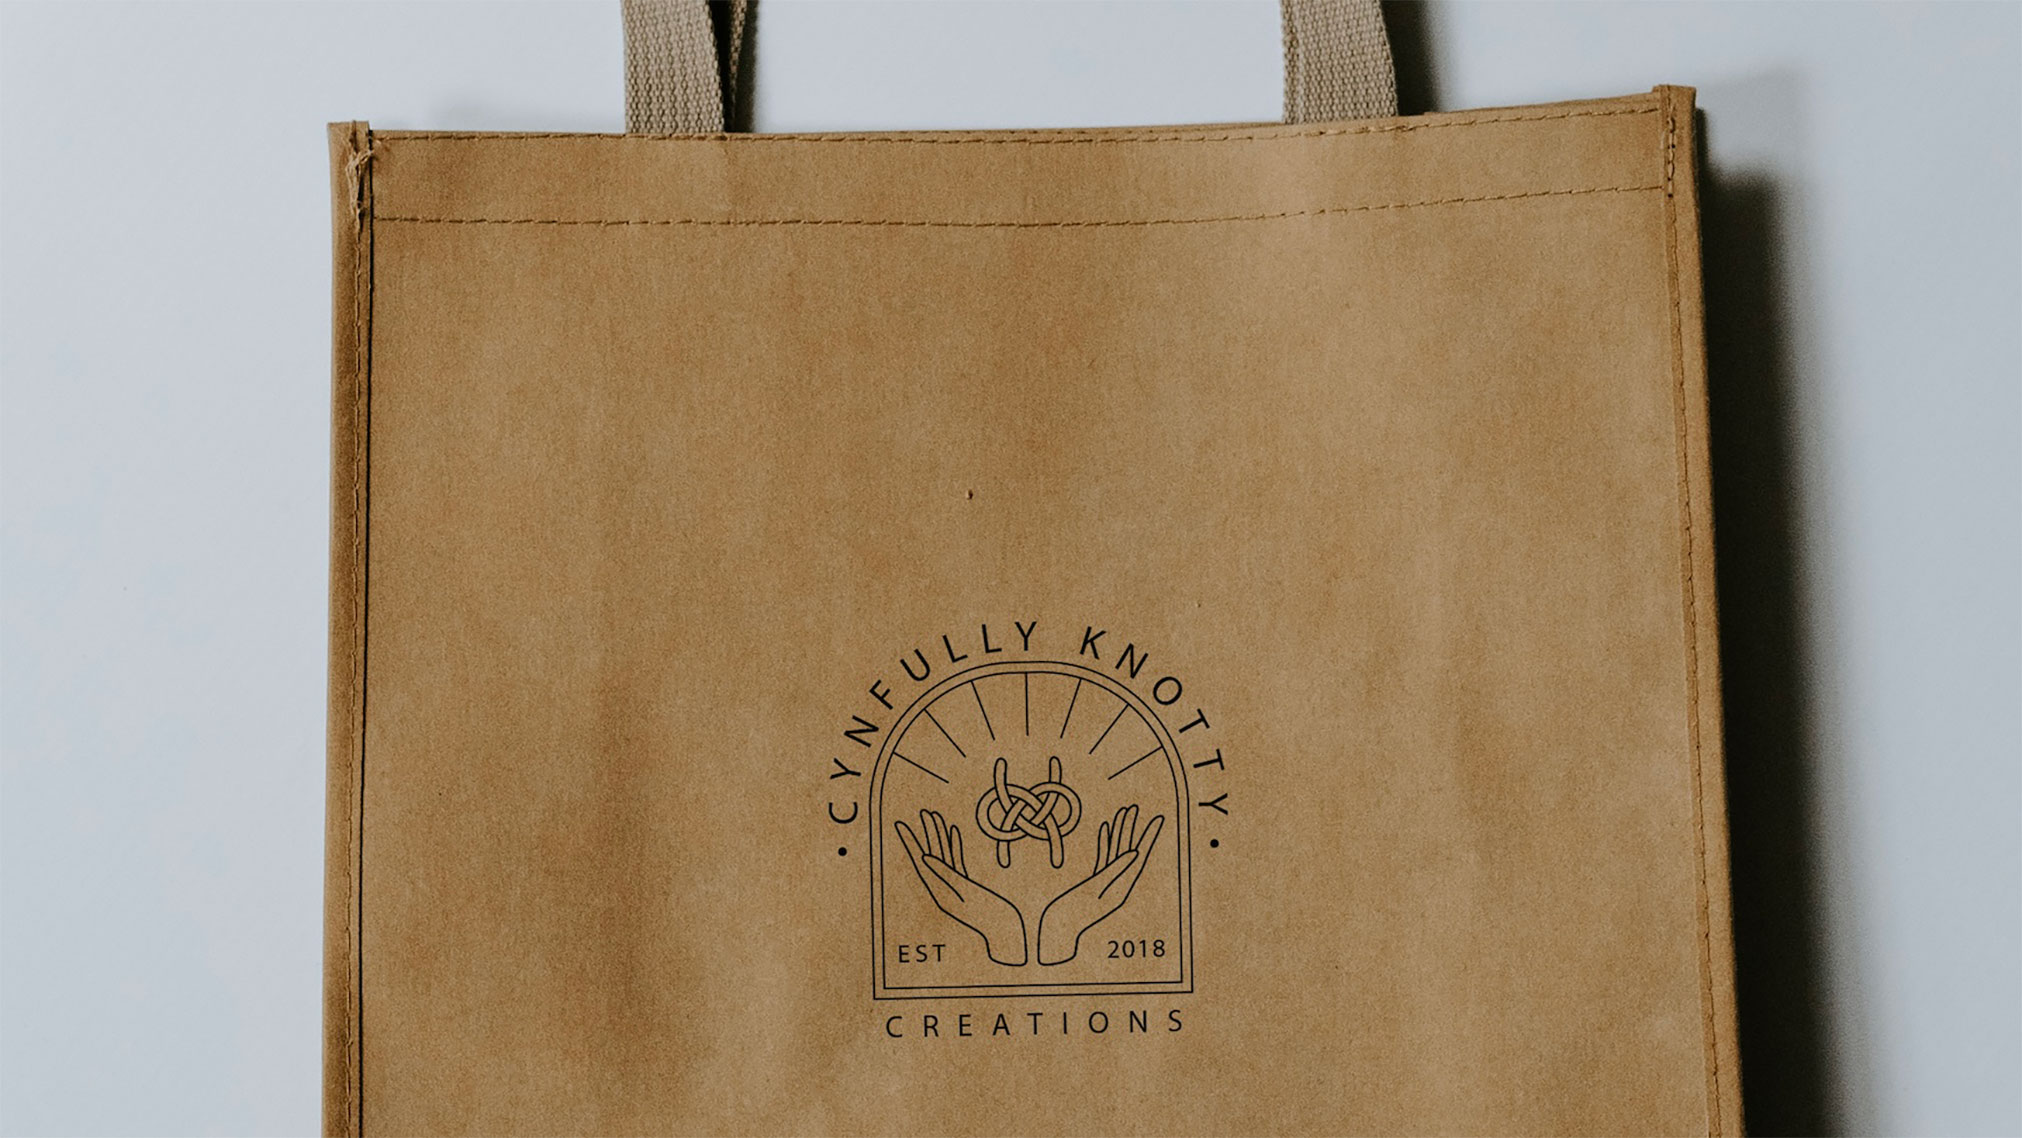 In June 2019, Cynthia, the owner of Cynfully Knotty, came to me with the desire to brand her business. Cynfully Knotty is a small local brand that provides macramé creations. This project involved brand identity design, social media and print collateral.